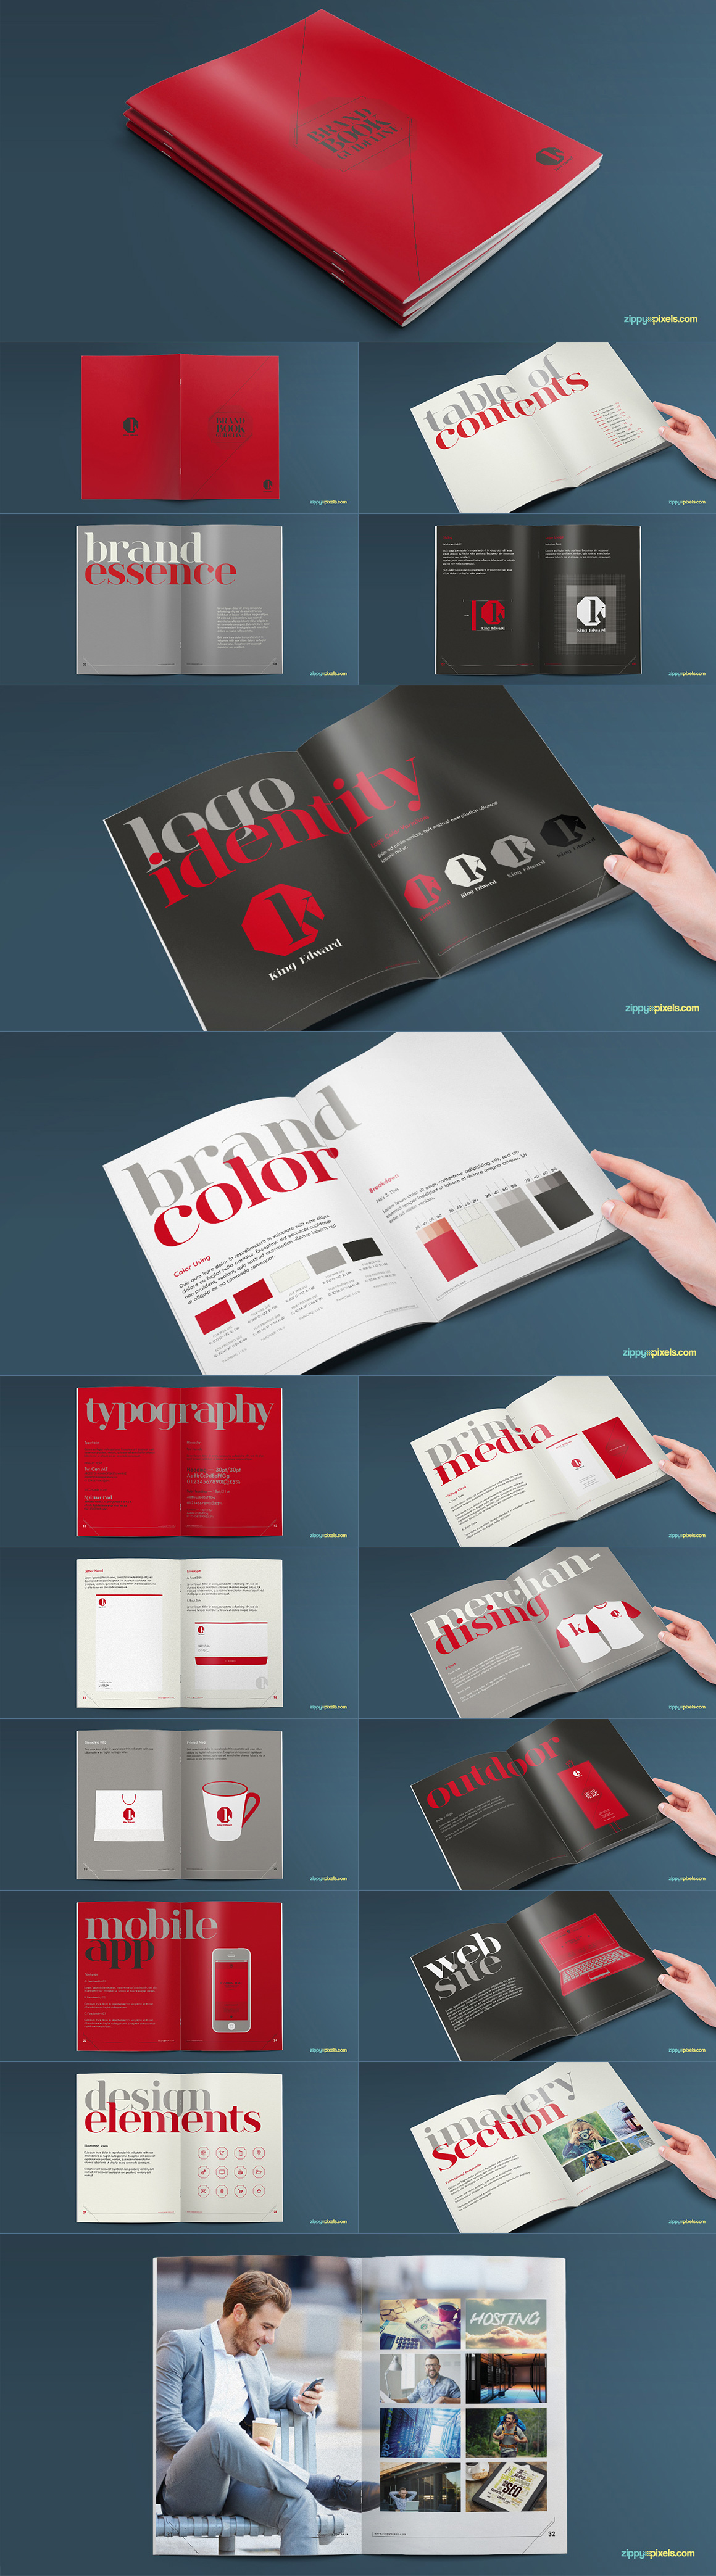 Style Guide & Brand Book Templates-strip10